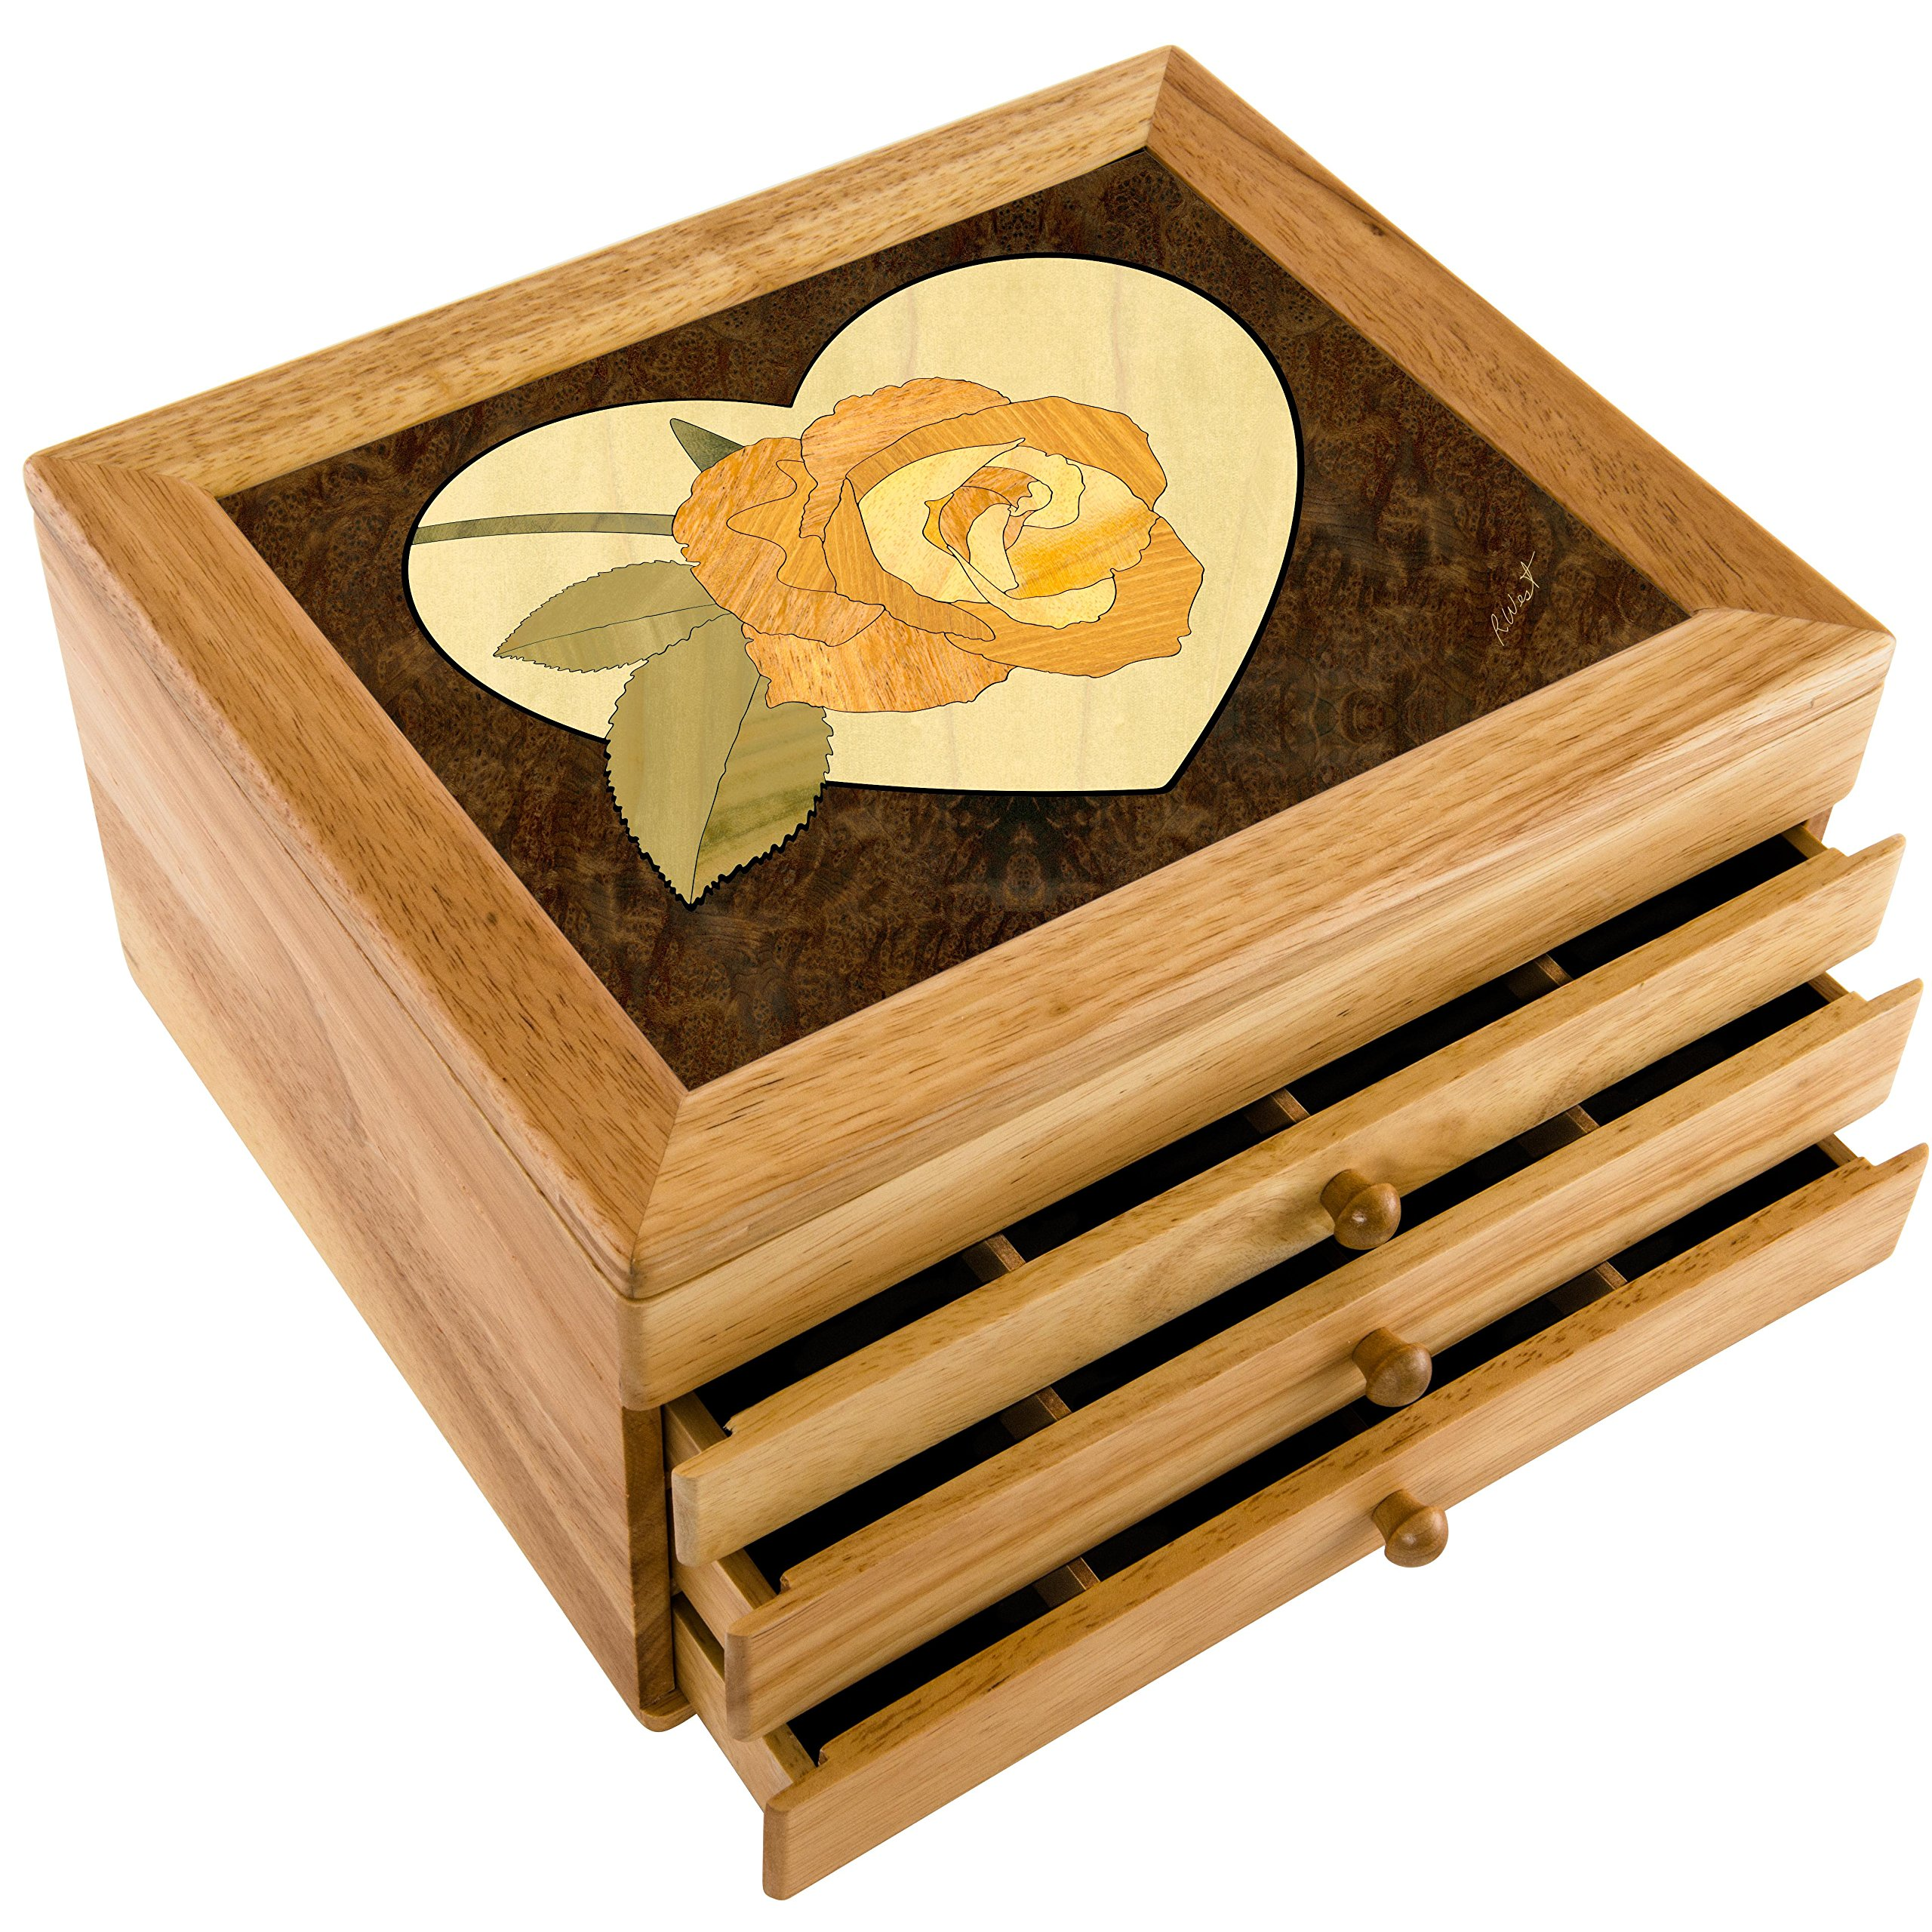 MarqART Wood Art Flower Box - Handmade USA - Unmatched Quality - Unique, No Two are The Same - Original Work of Wood Art. A Rose Gift, Ring, Trinket or Wood Jewelry Box (#7041 Heart Rose 3 Drawer)